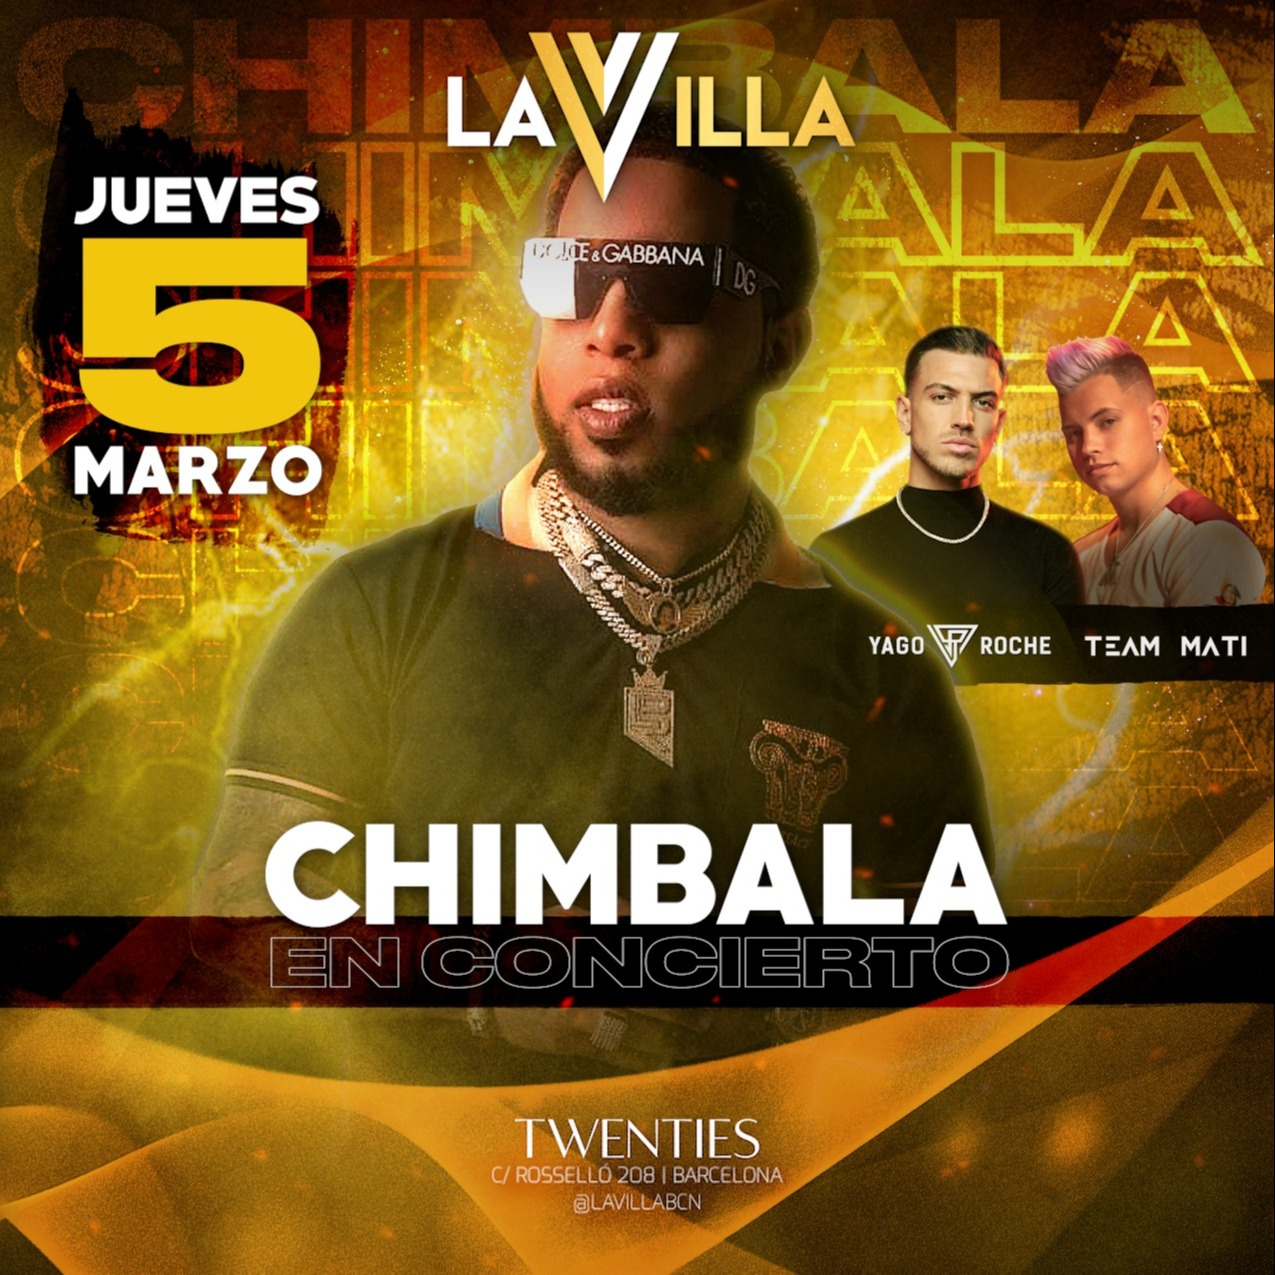 Concierto Chimbala - Club Twenties Barcelona